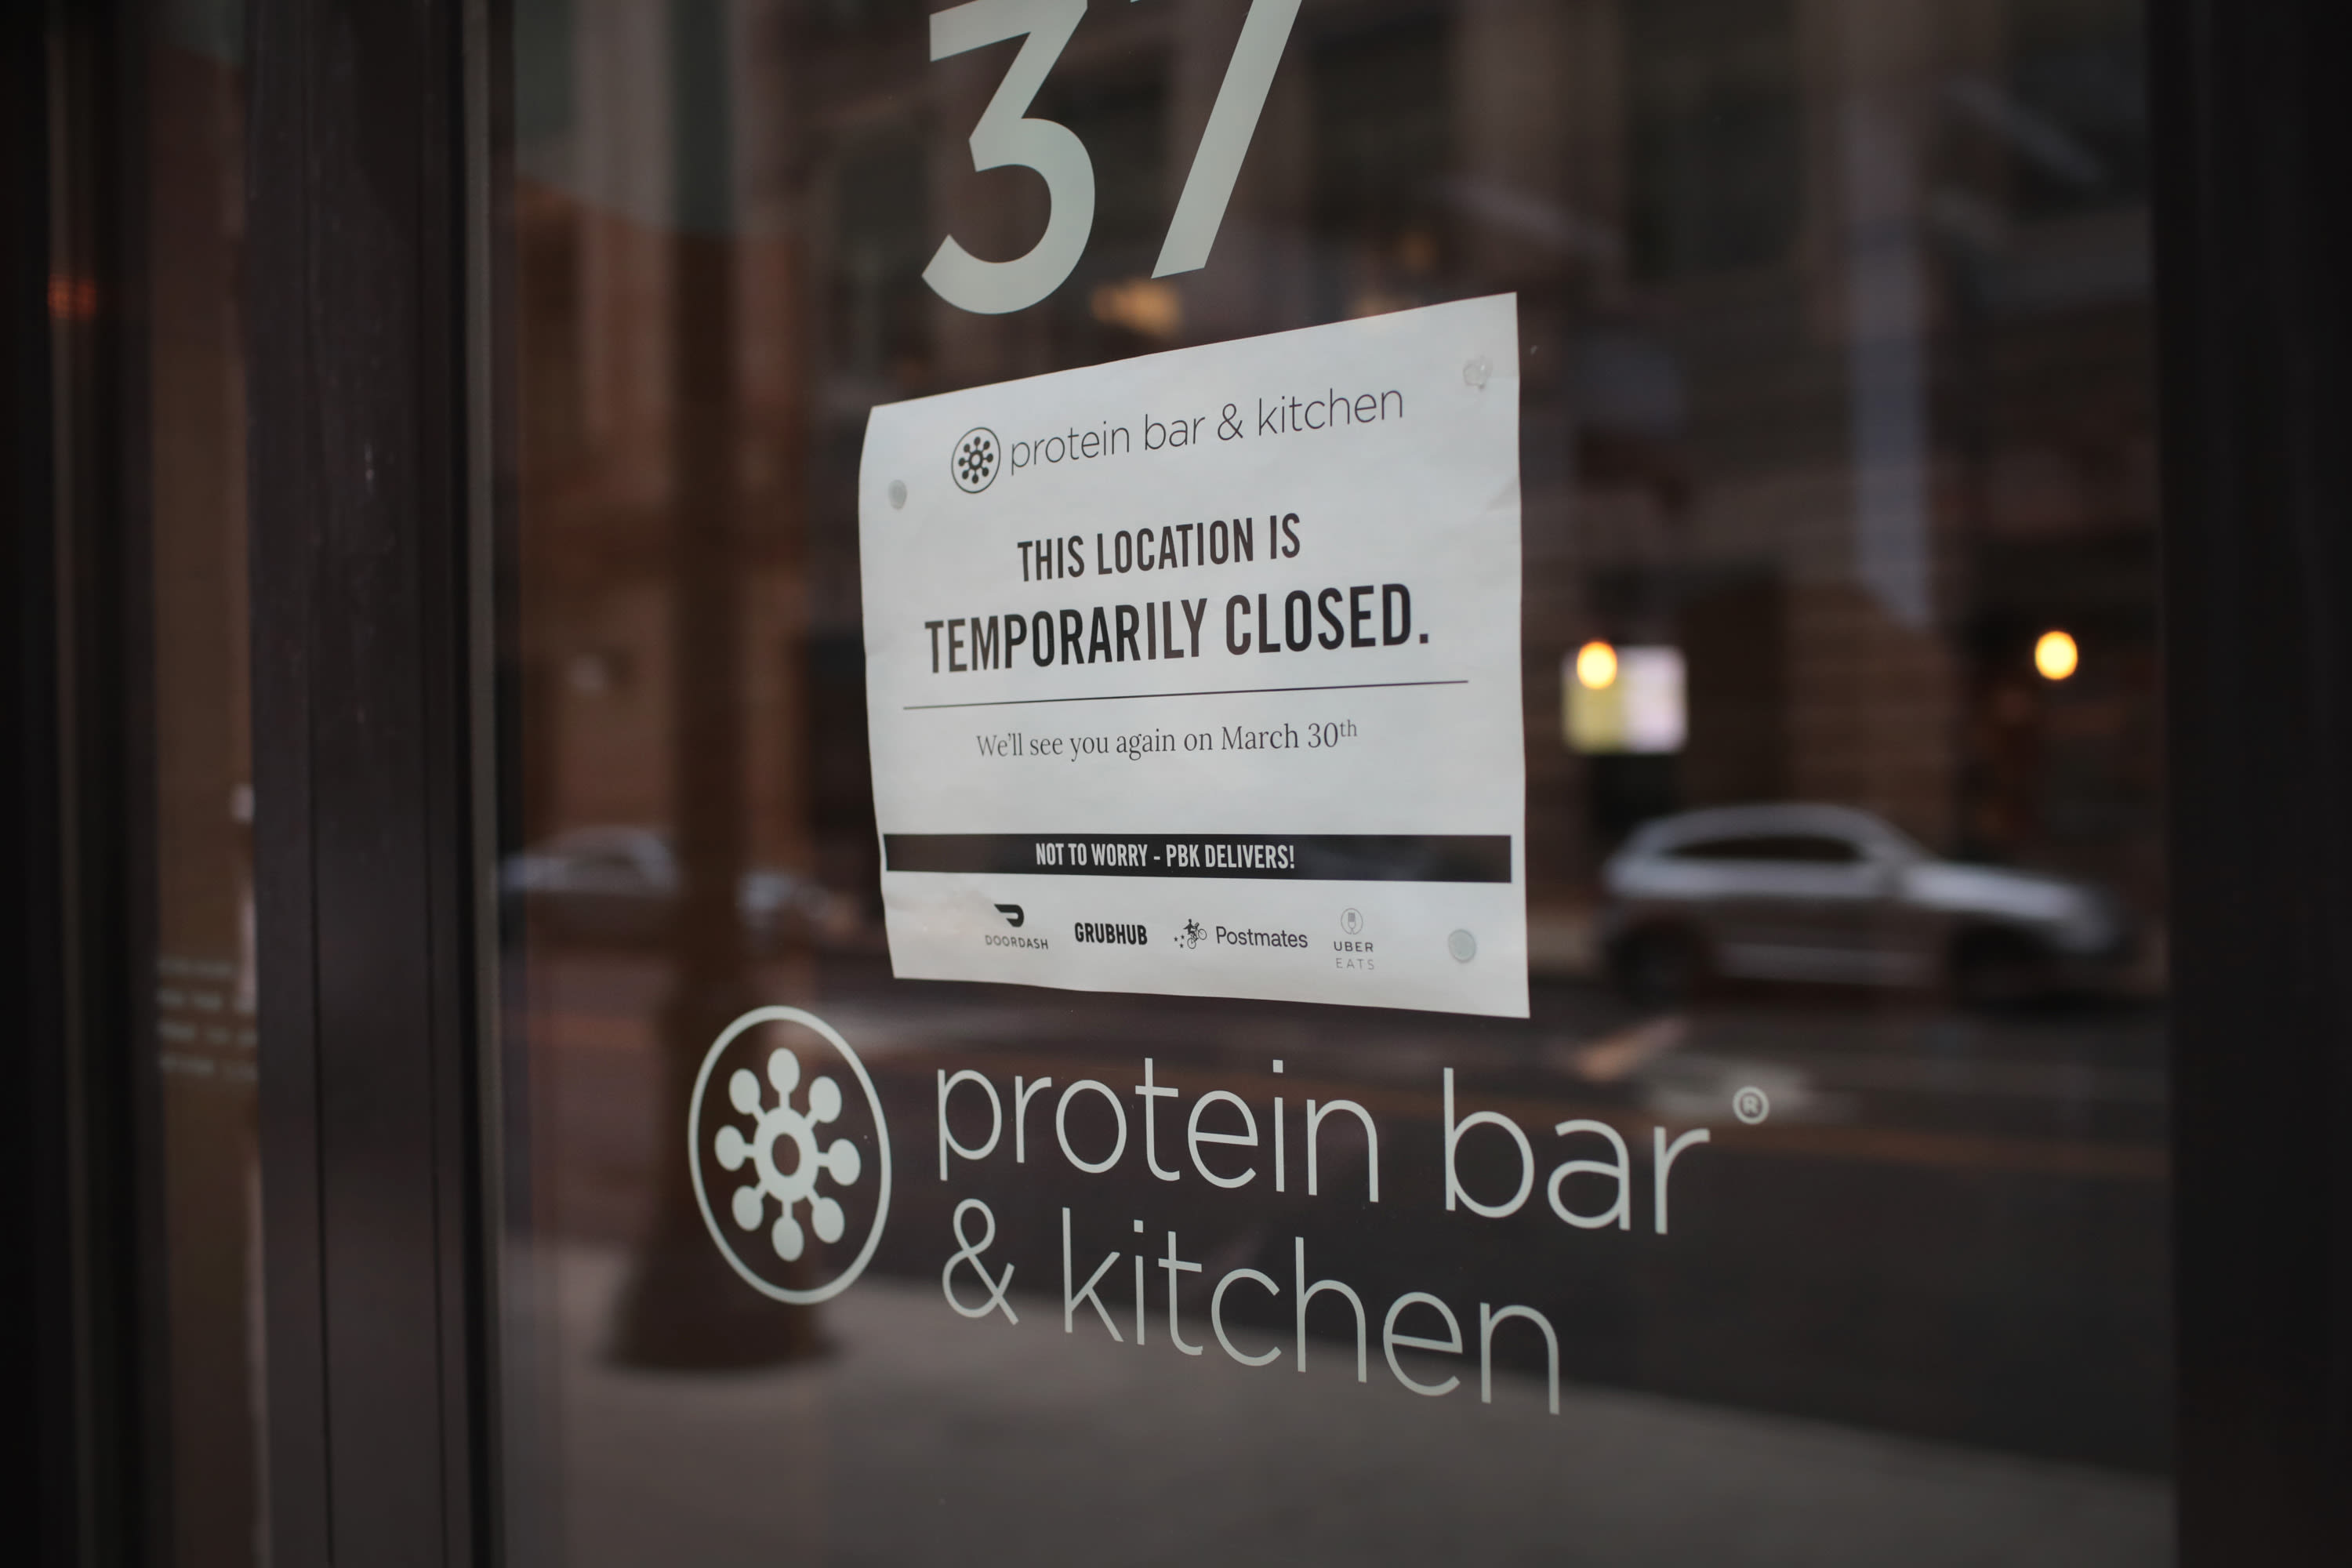 Restaurants try to keep in touch with furloughed workers